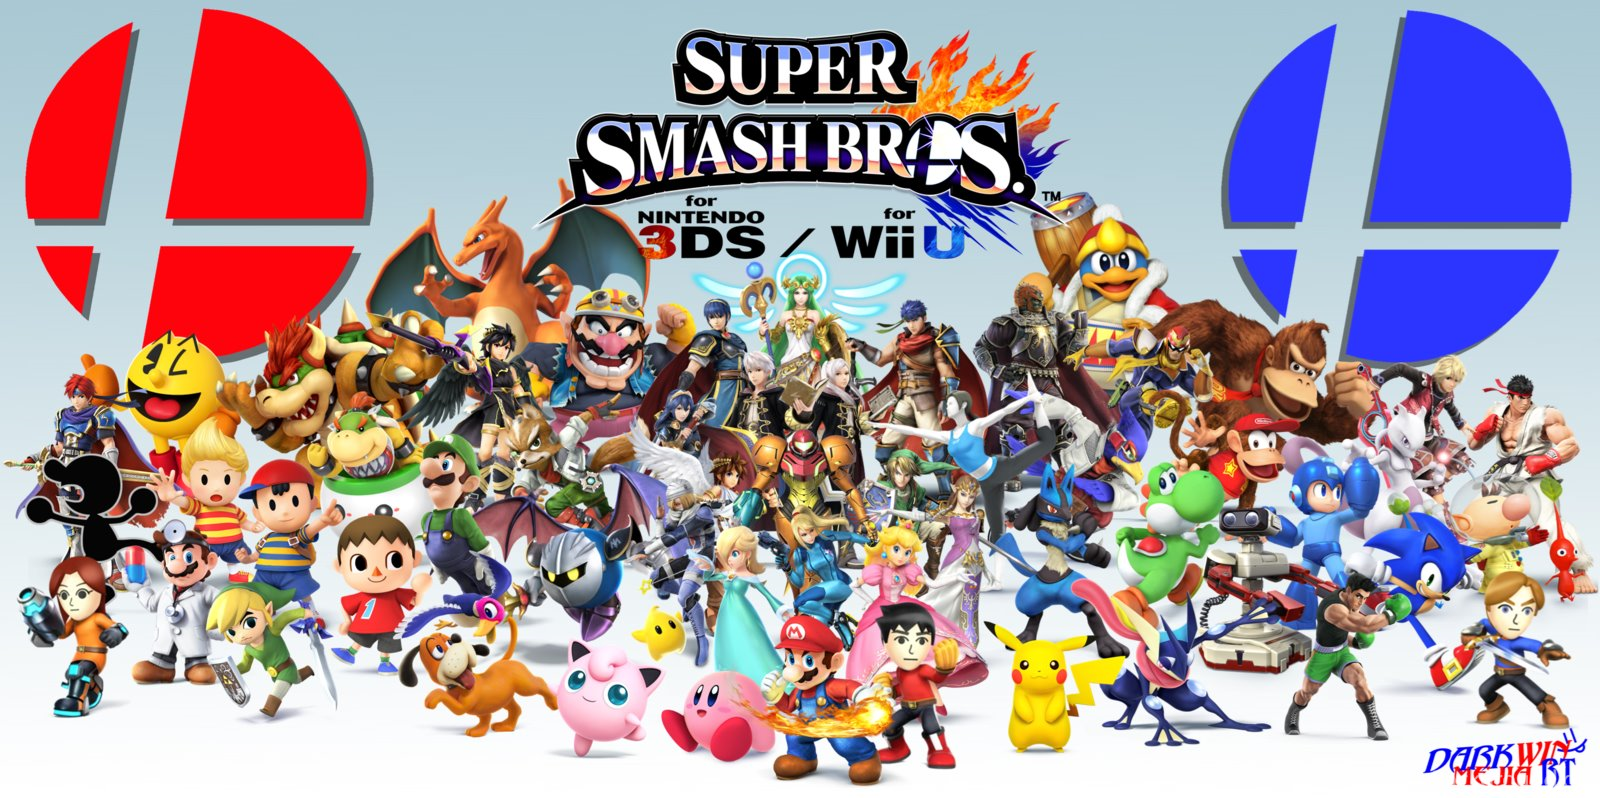 Super Smash Bros Wii U 3ds Wallpapers By Dmrt By Darkwinmejiart On